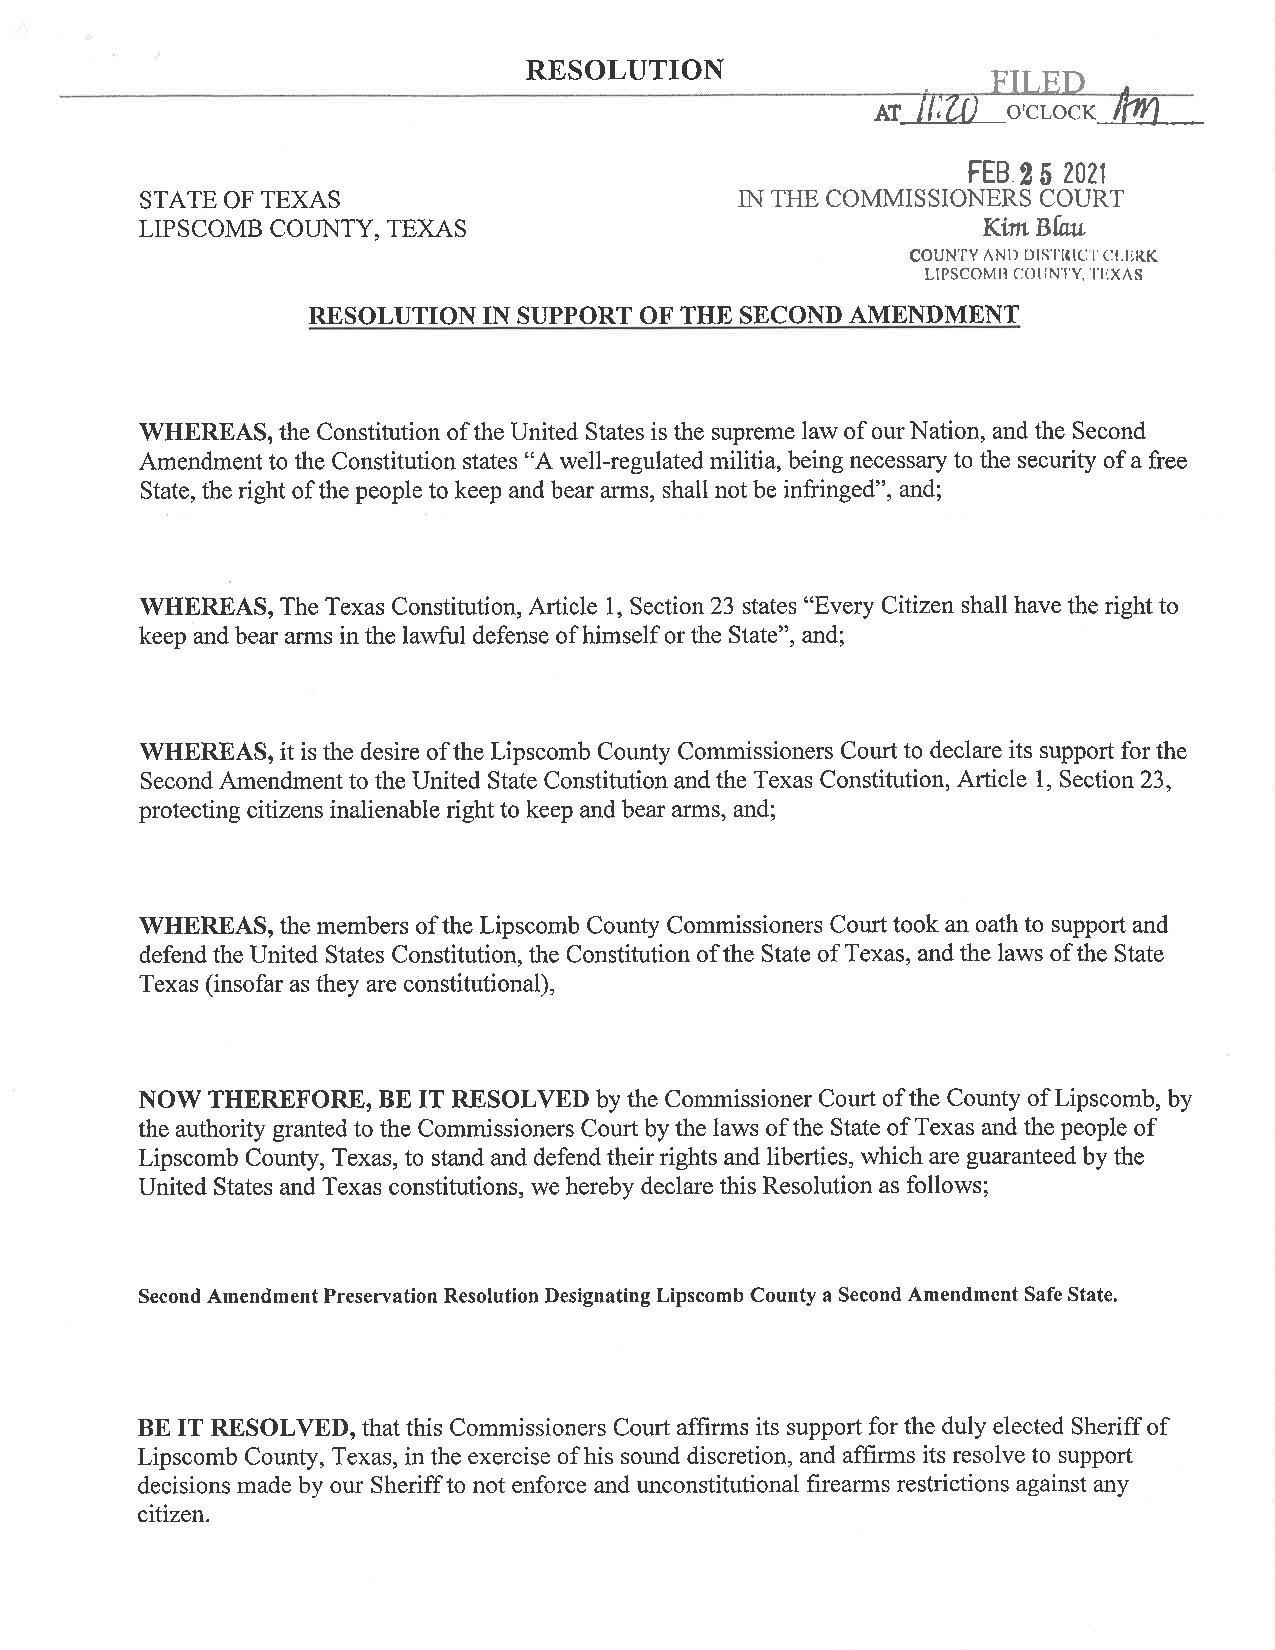 Lipscomb County, Texas Second Amendment Resolution page 1